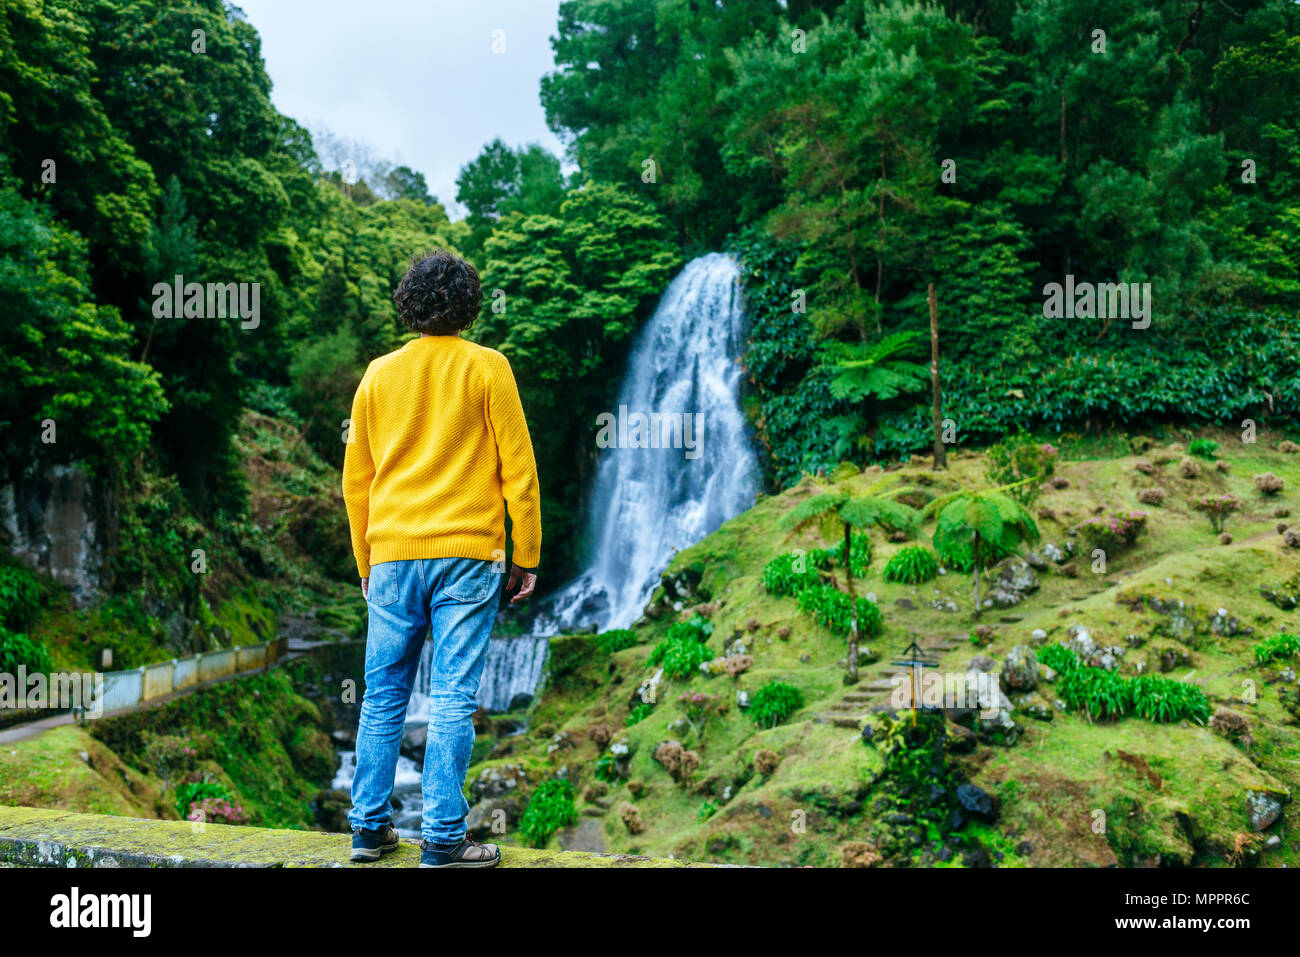 Azores, Sao Miguel, rear view of man looking at a waterfall in the Ribeira dos Caldeiroes Natural Park - Stock Image